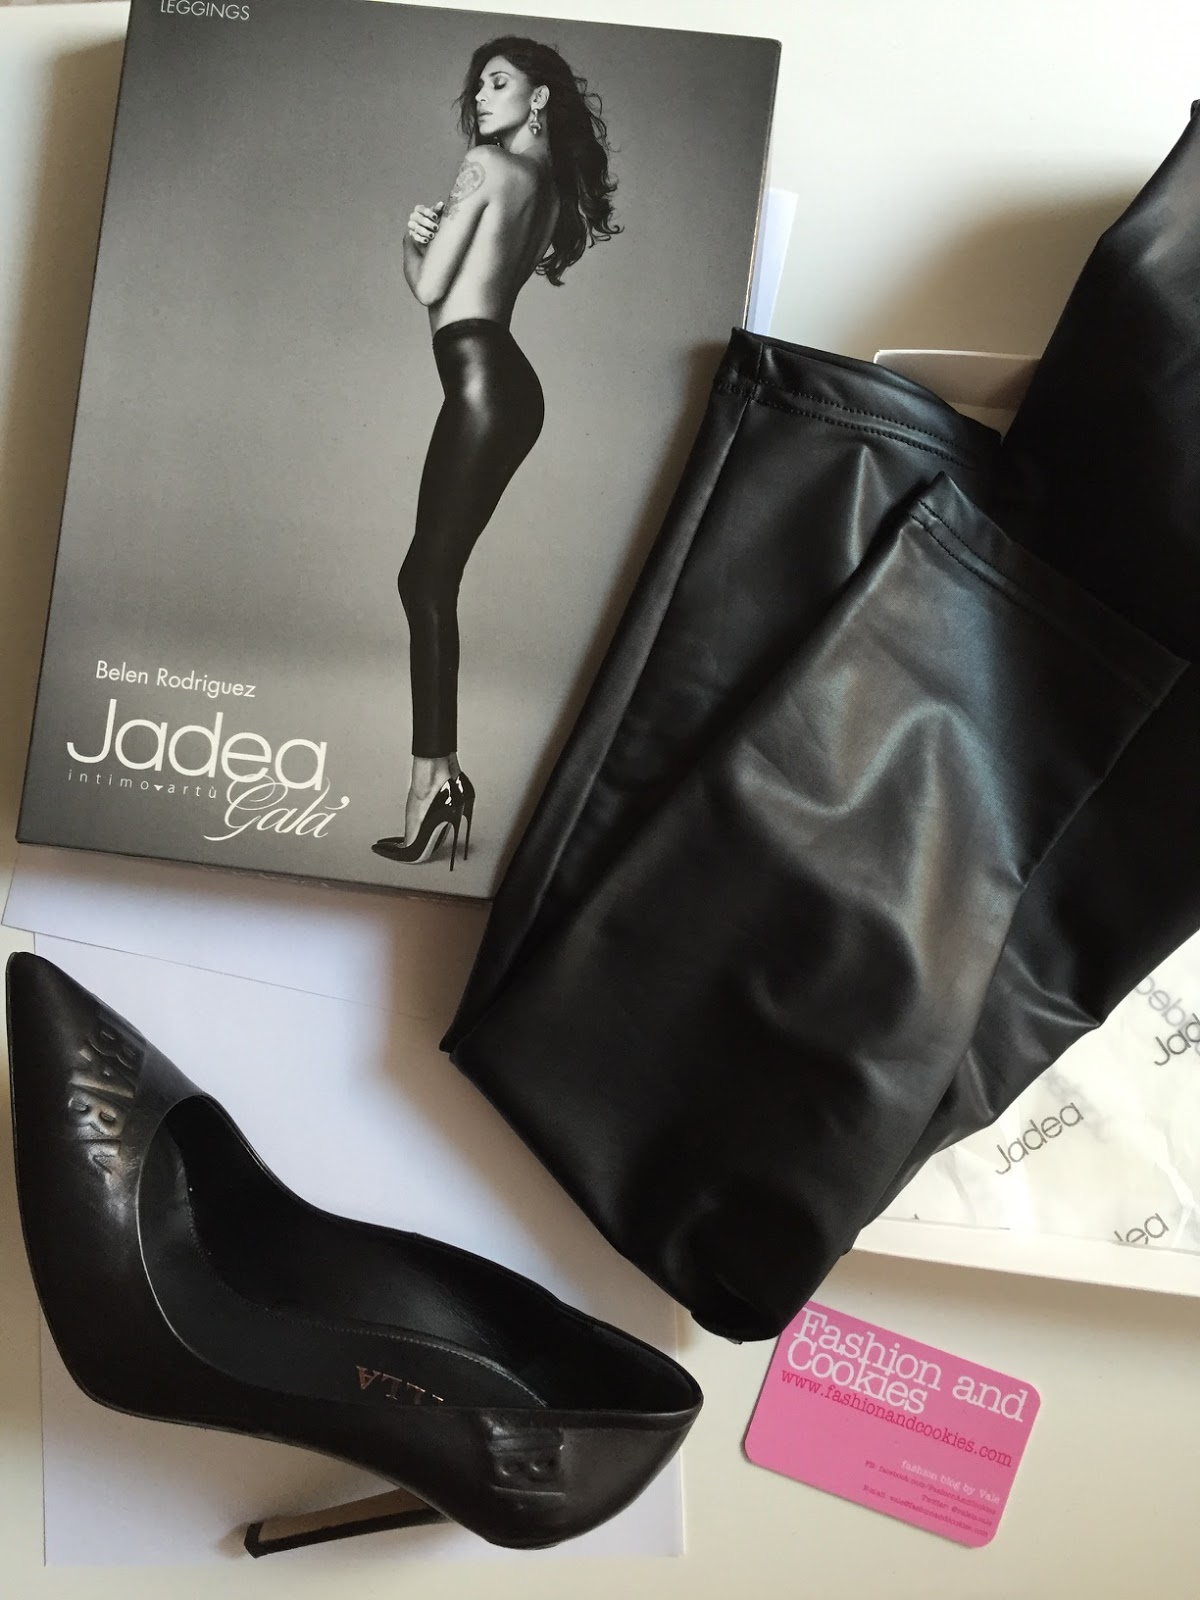 Jadea leggings effetto pelle, Jadea leather leggings su Fashion and Cookies fashion blog, fashion blogger